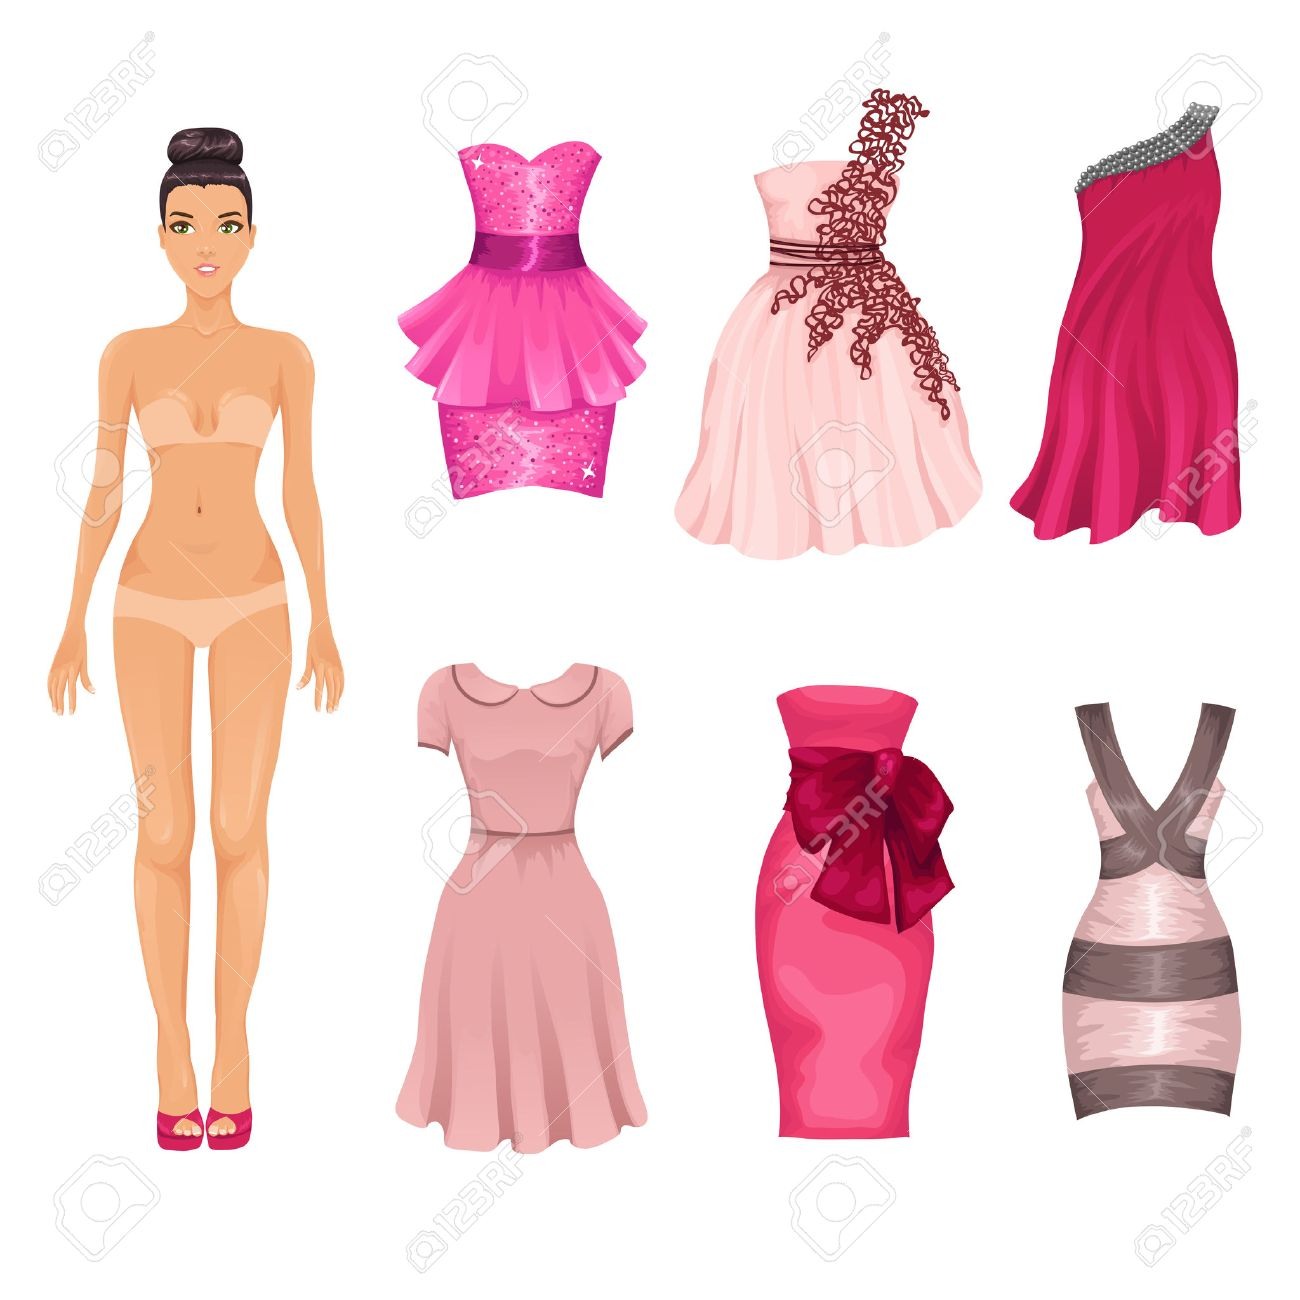 dress up doll with an assortment of pink prom and cocktail dresses